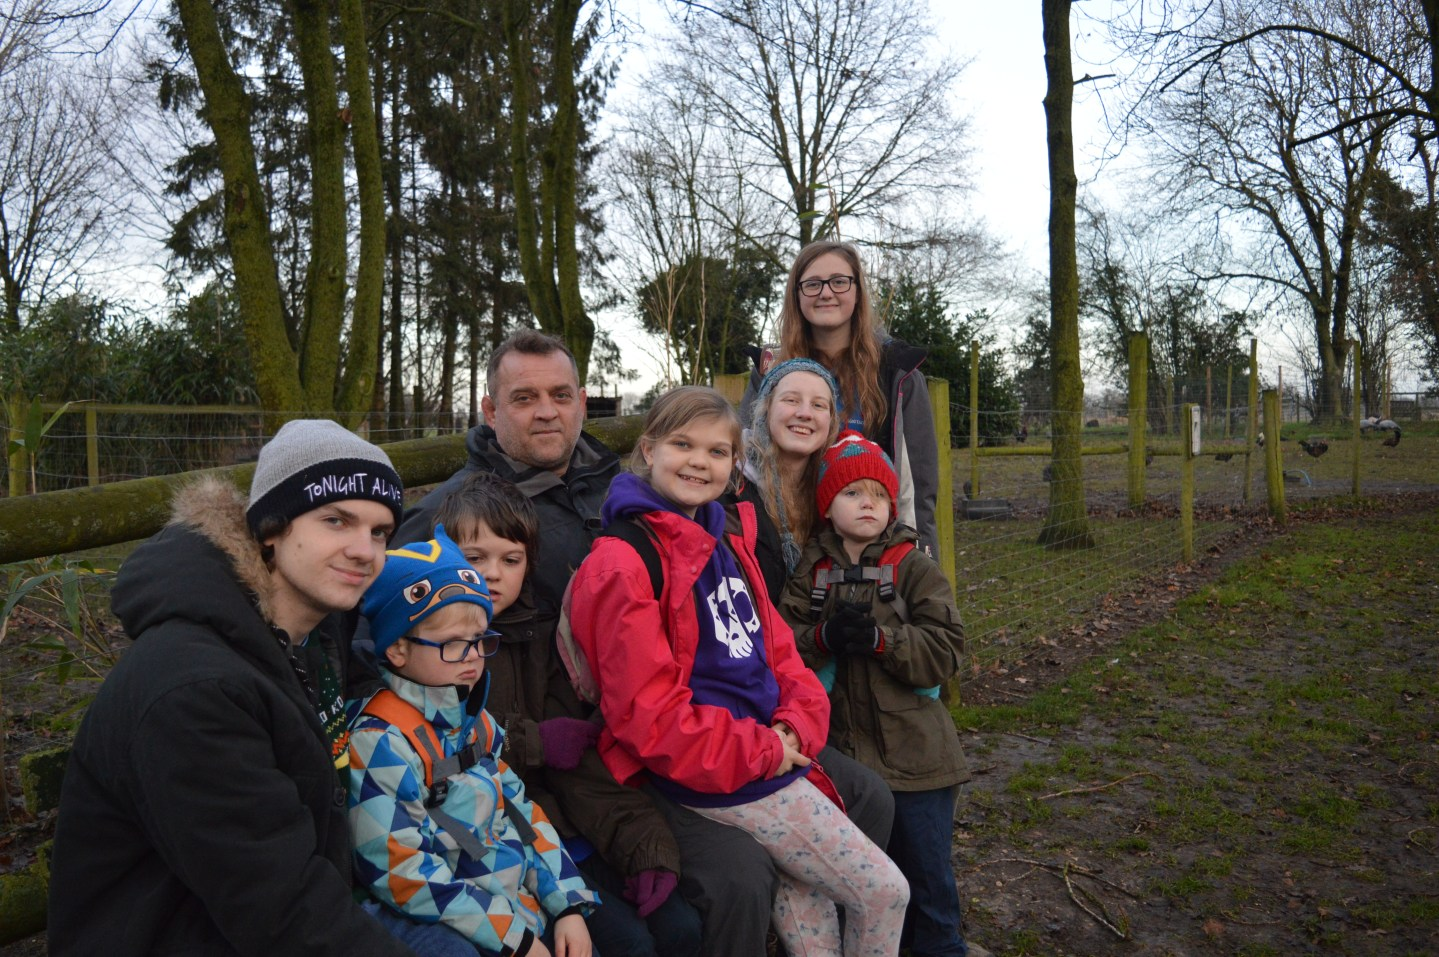 Christmas Spectacular appearing at Melsop Farm Park